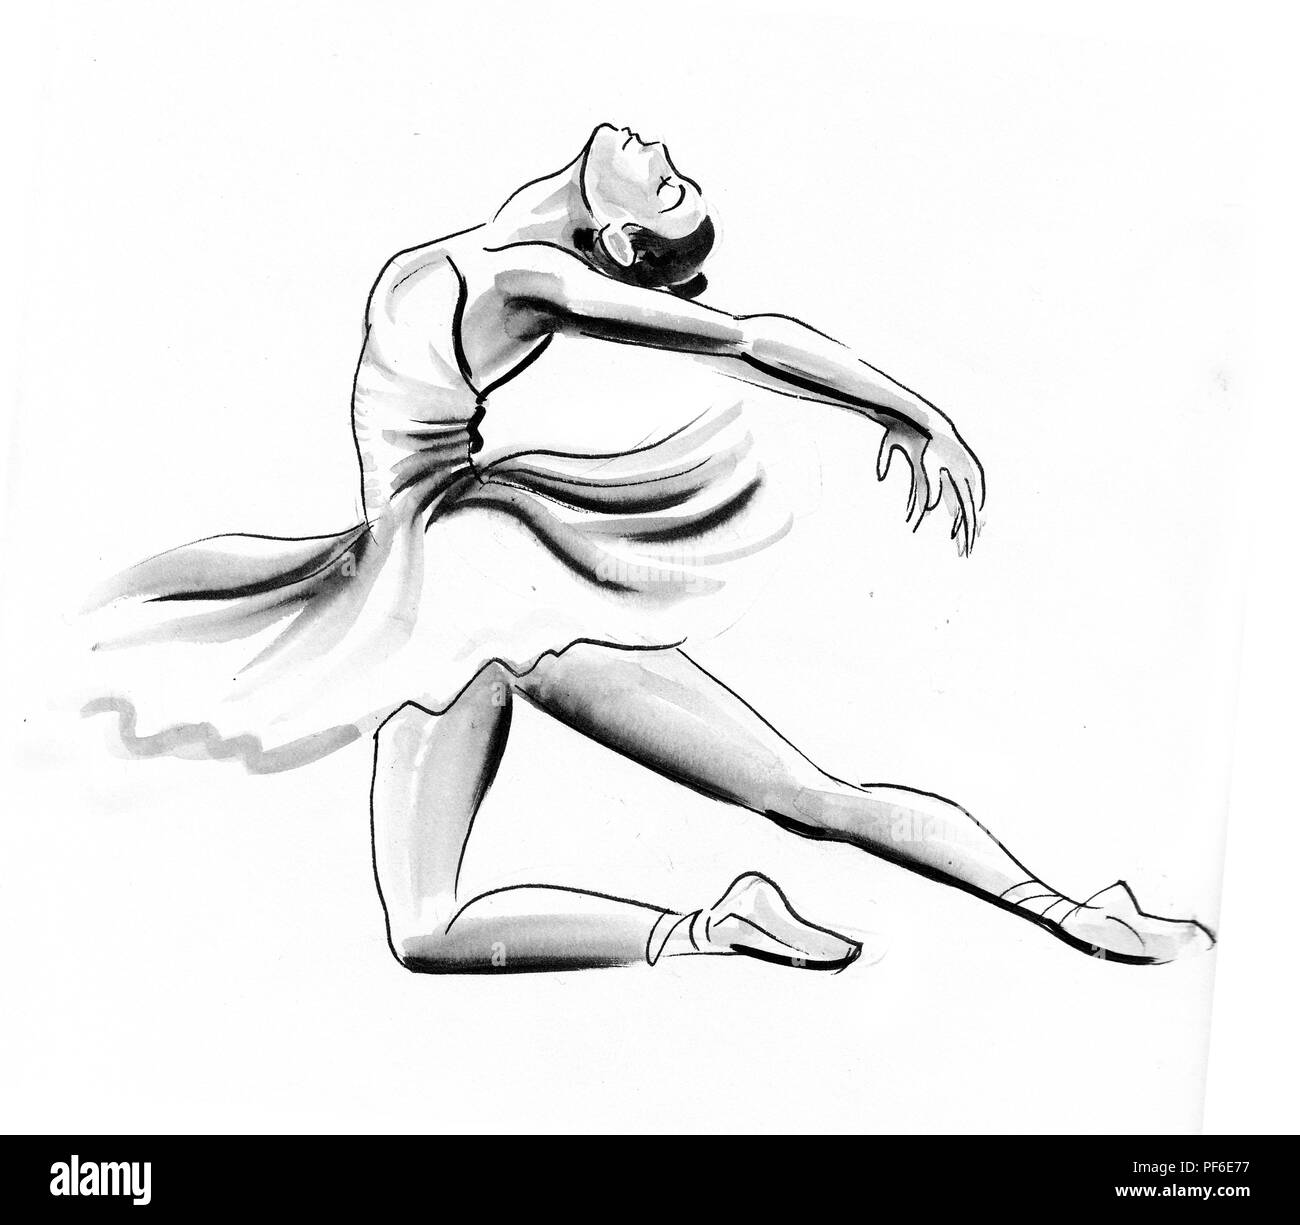 Dancing Ballerina Ink And Watercolor Illustration Stock Photo Alamy